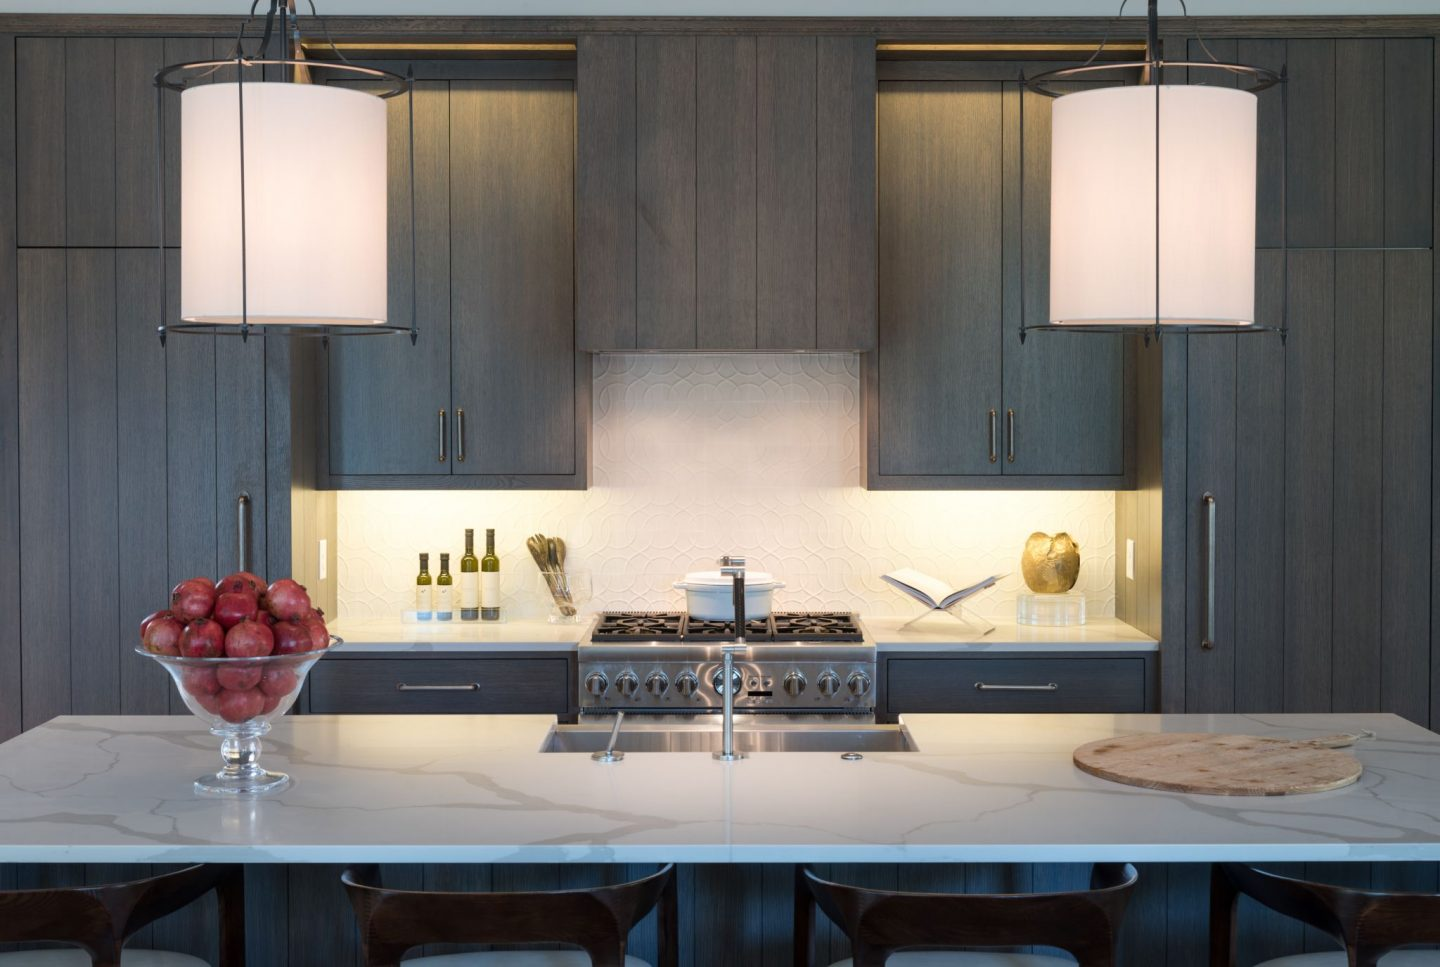 Moody modern farmhouse kitchen and scullery by Randi Stovesand for O'More Show House